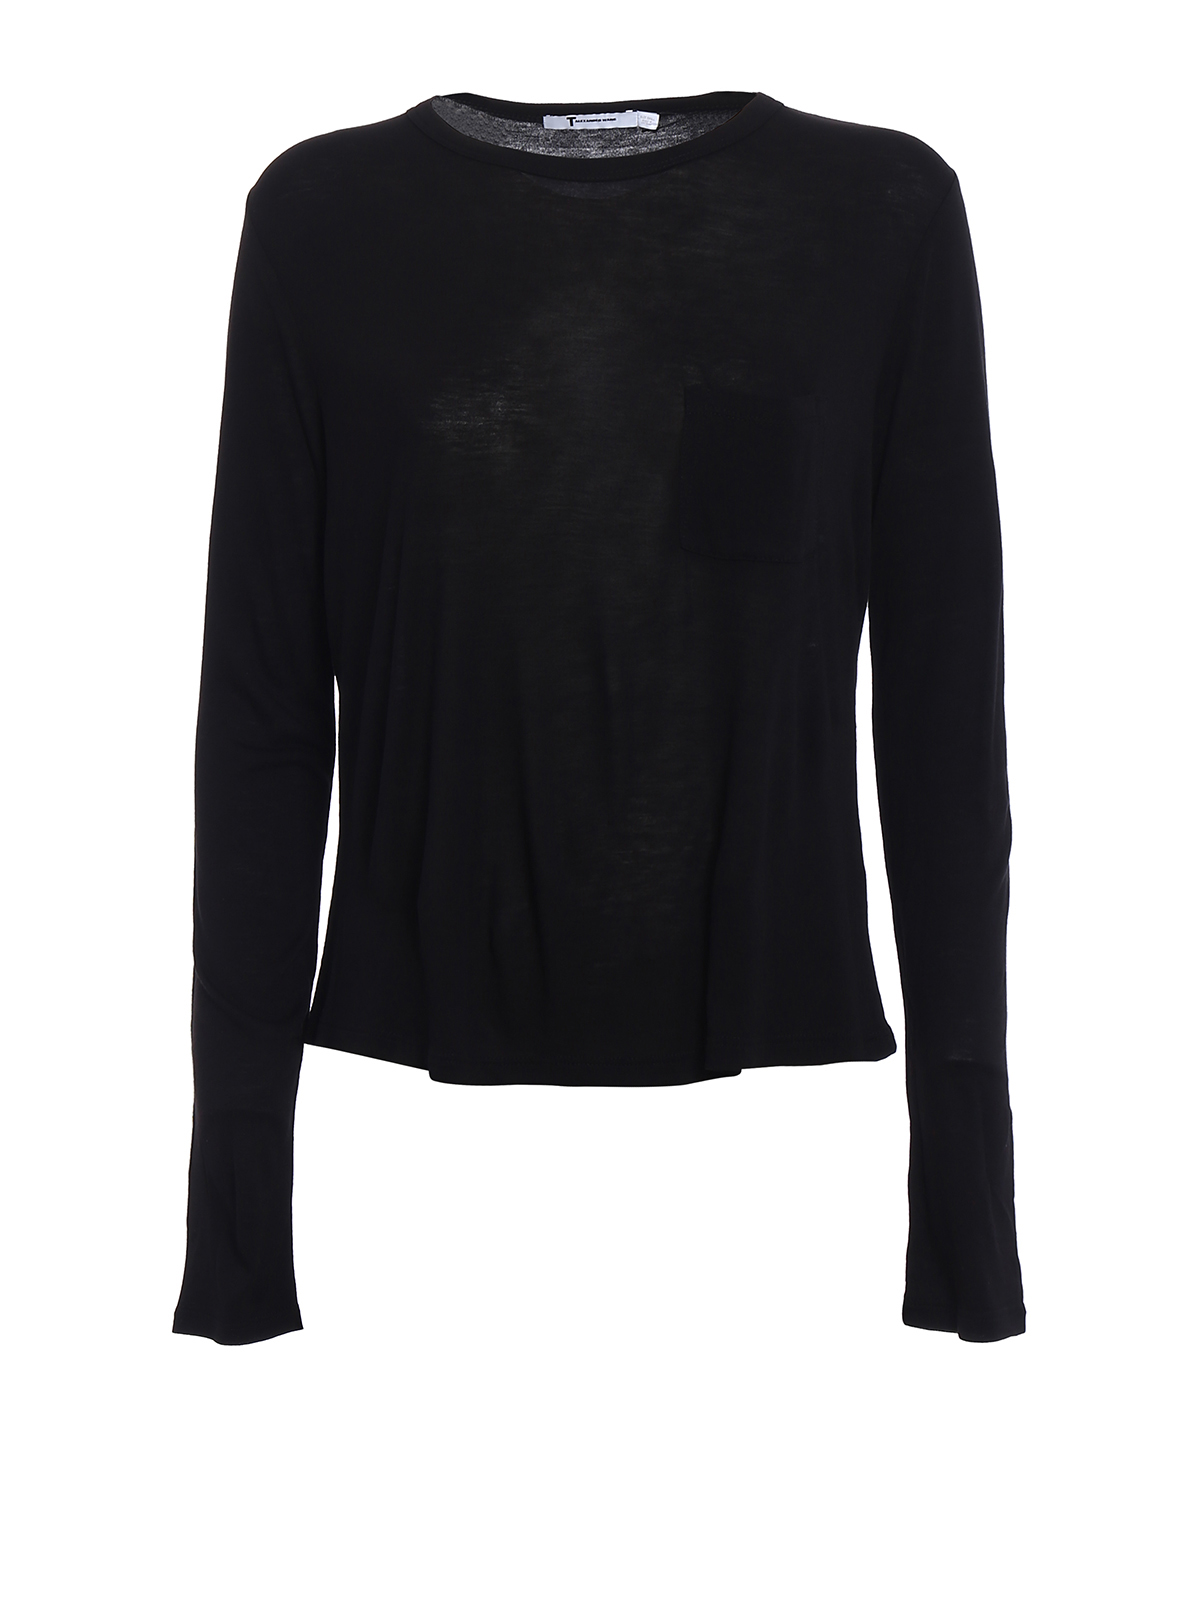 Rayon t shirt with patch pocket by alexander wang t for Alexander wang t shirt